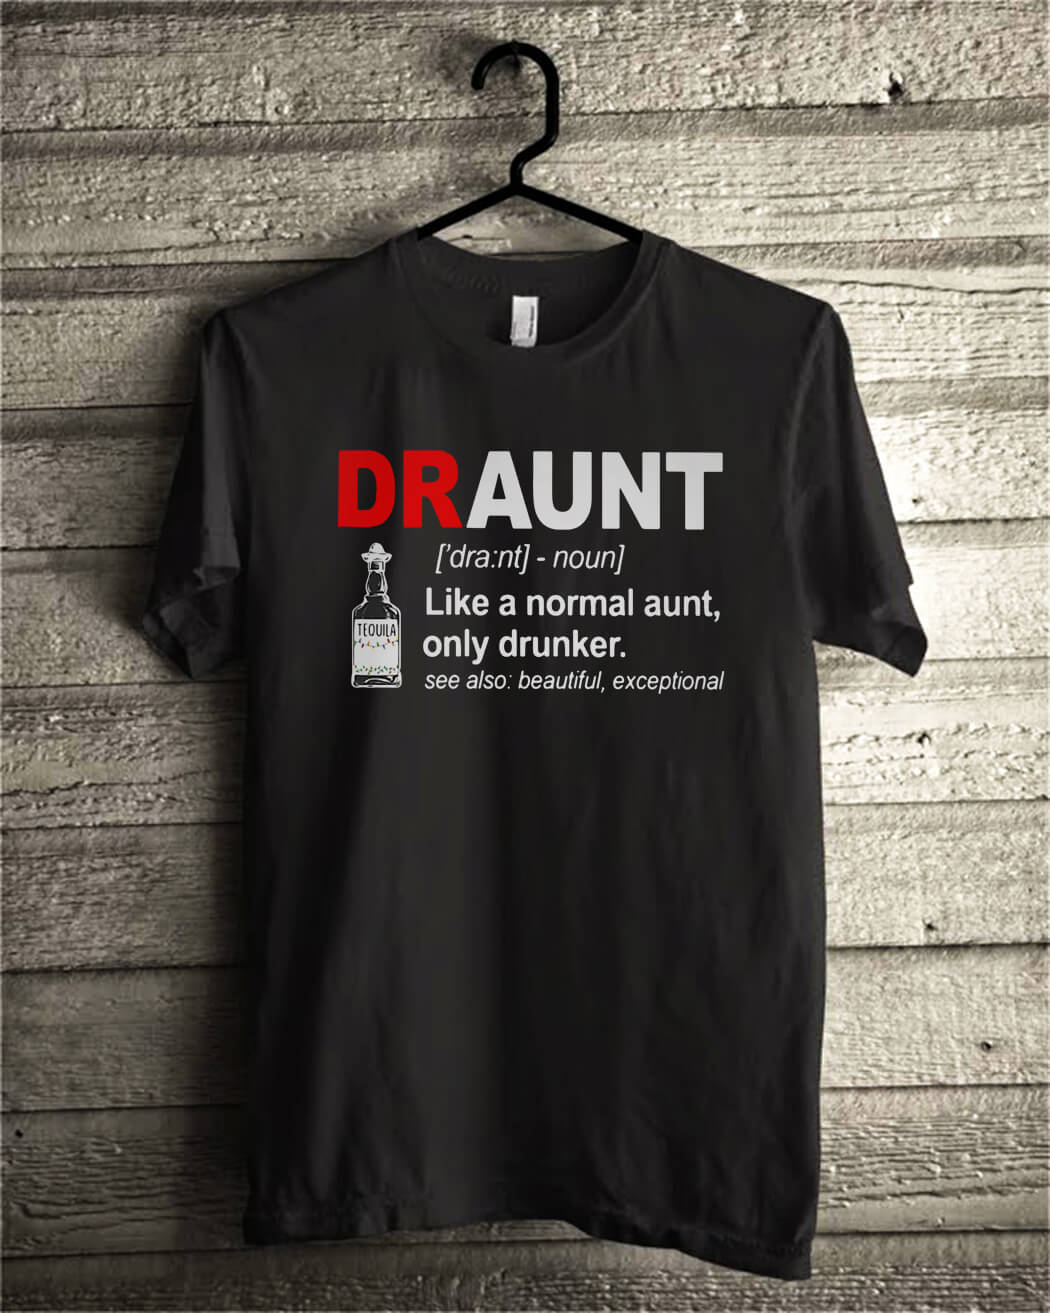 Tequila Draunt like a normal aunt only drunker shirt